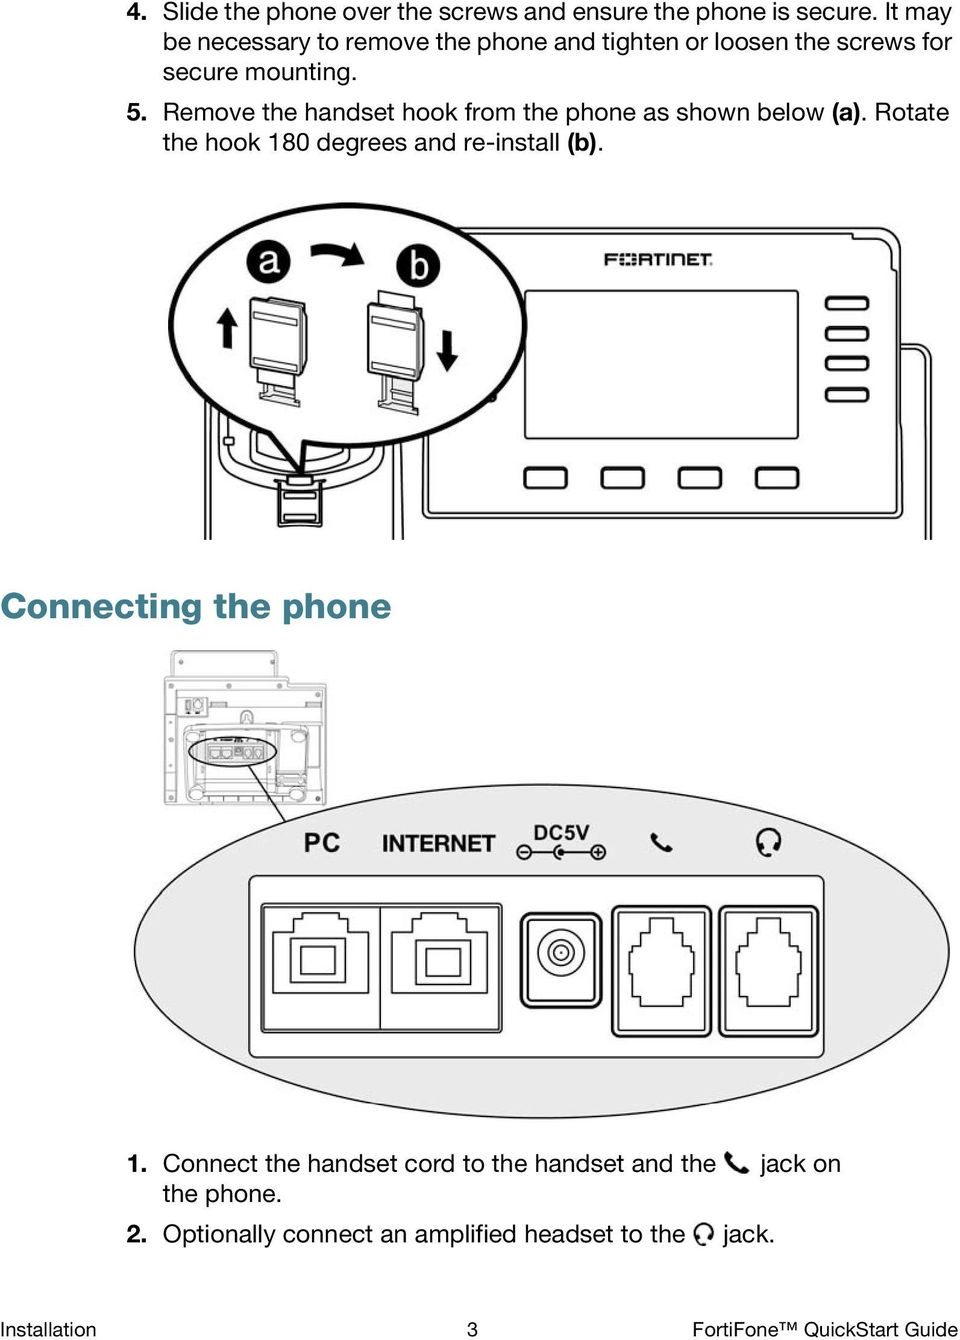 Remove the handset hook from the phone as shown below (a). Rotate the hook 180 degrees and re-install (b).